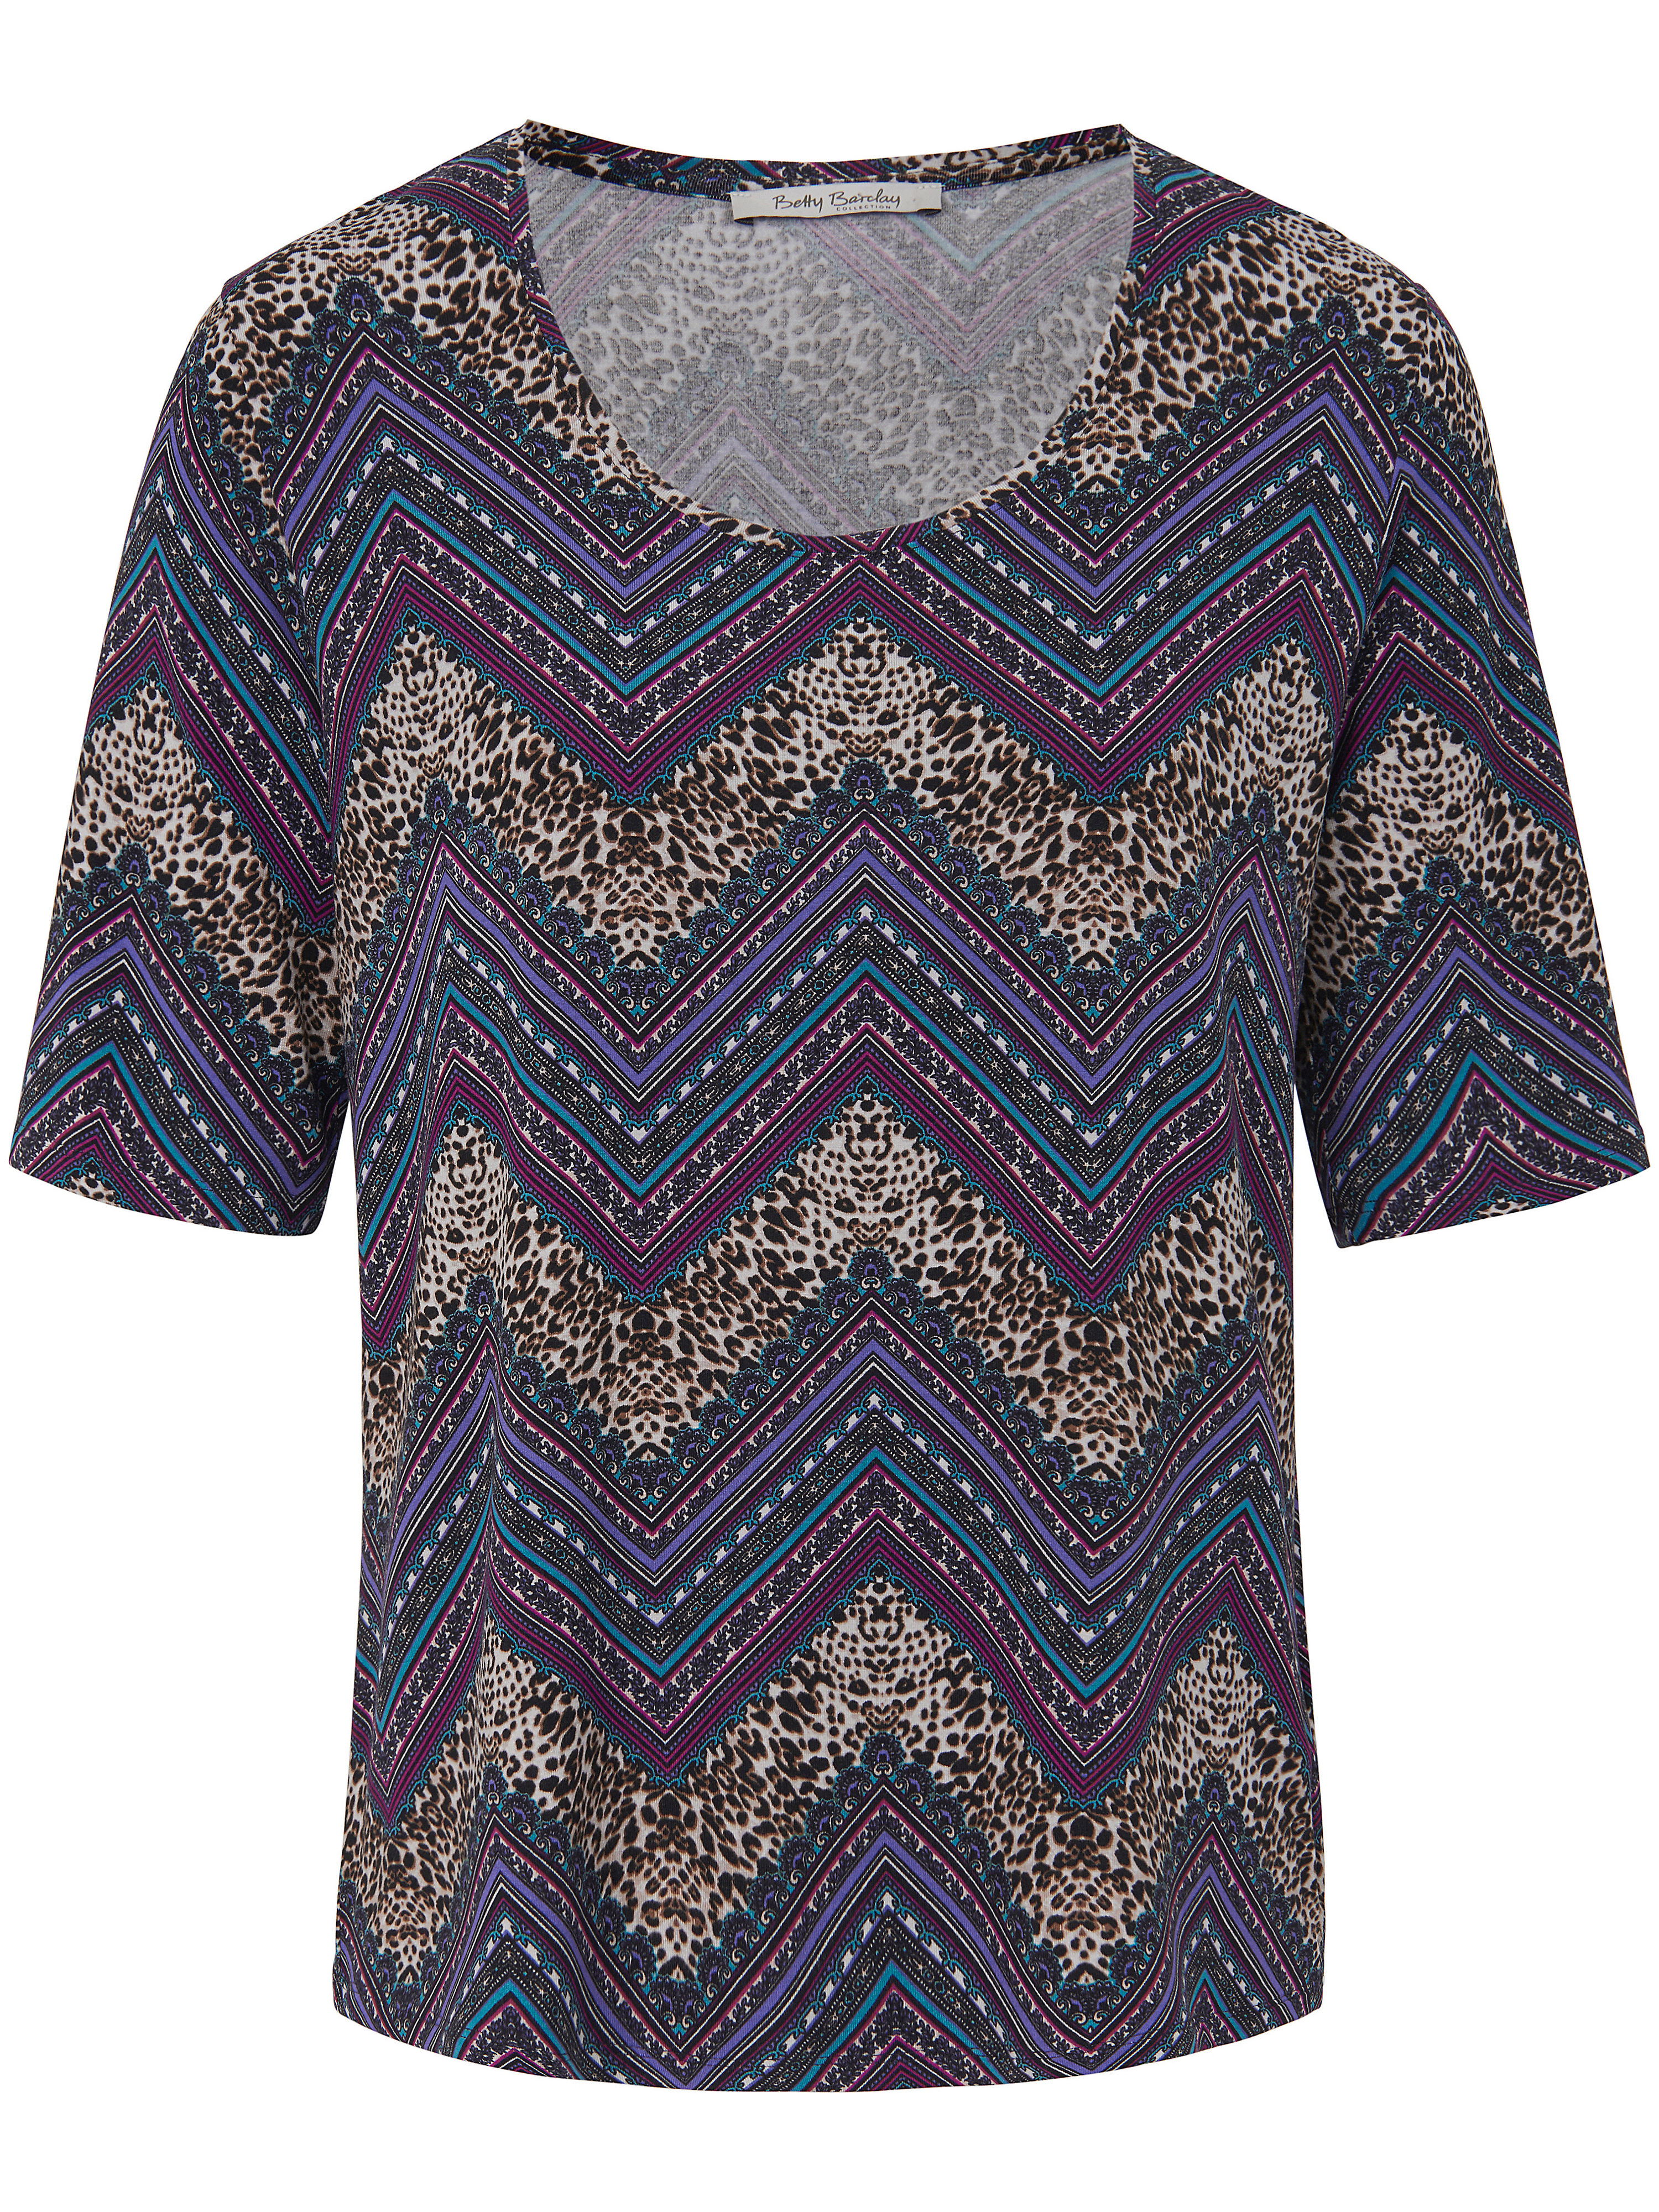 Image of   Bluse Fra Betty Barclay multicolor